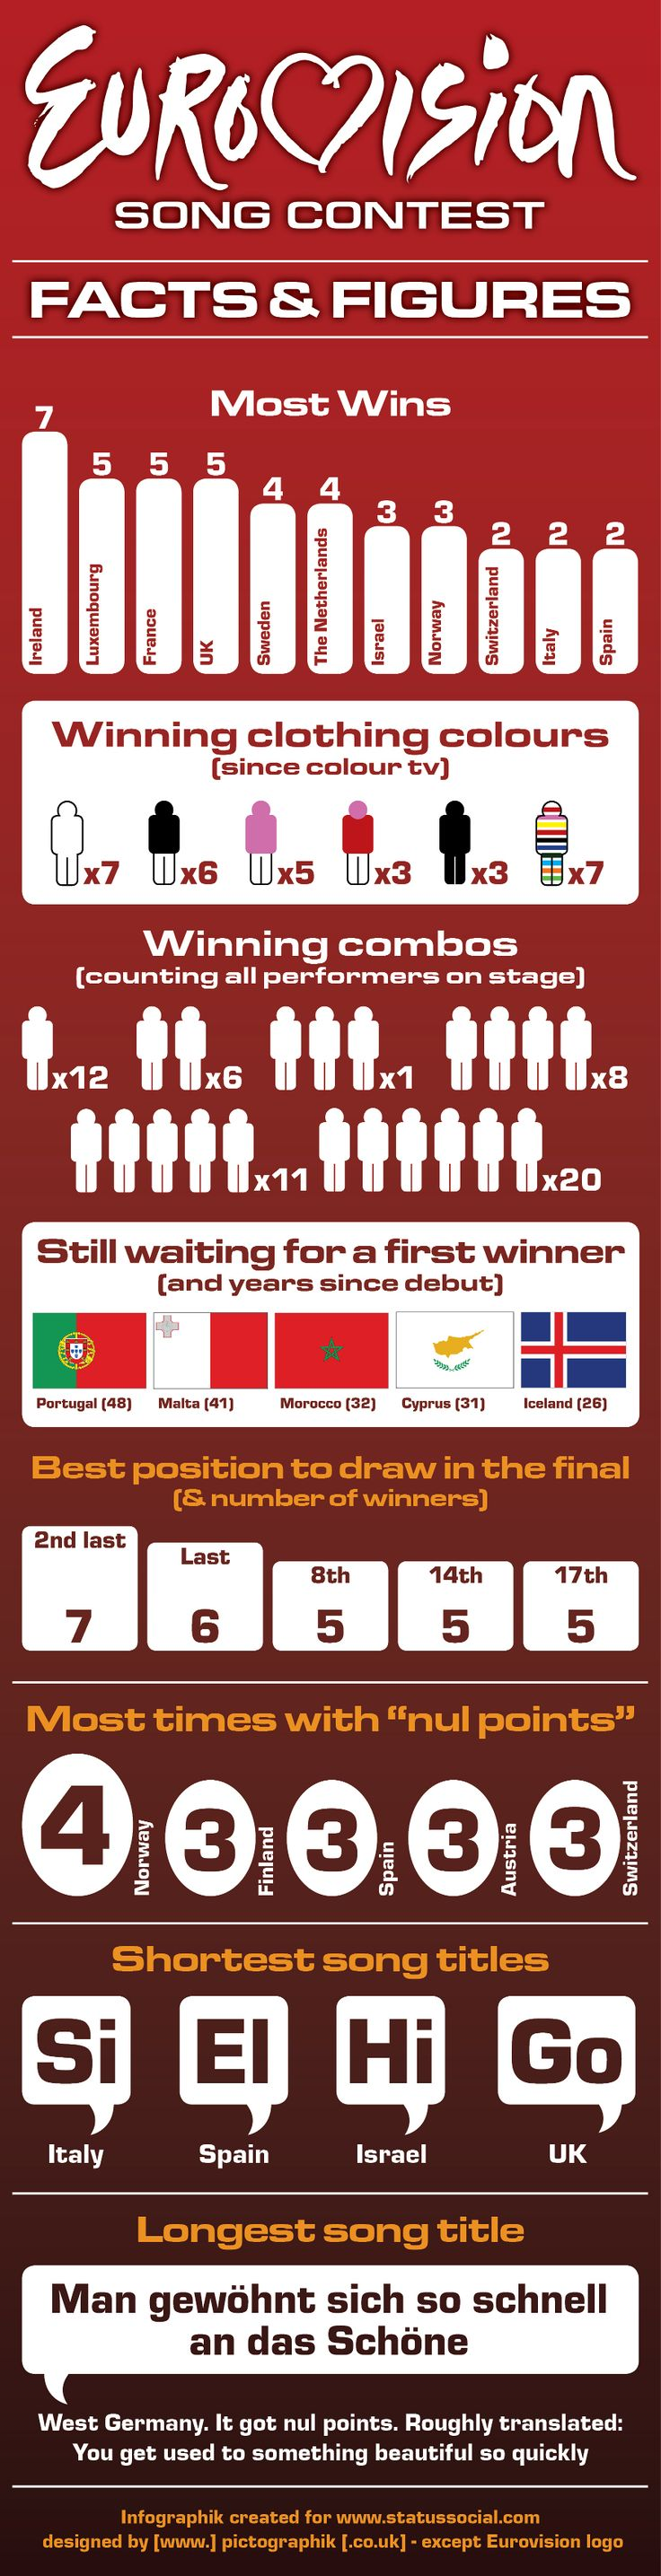 Eurovision Song Contest Facts & Figures